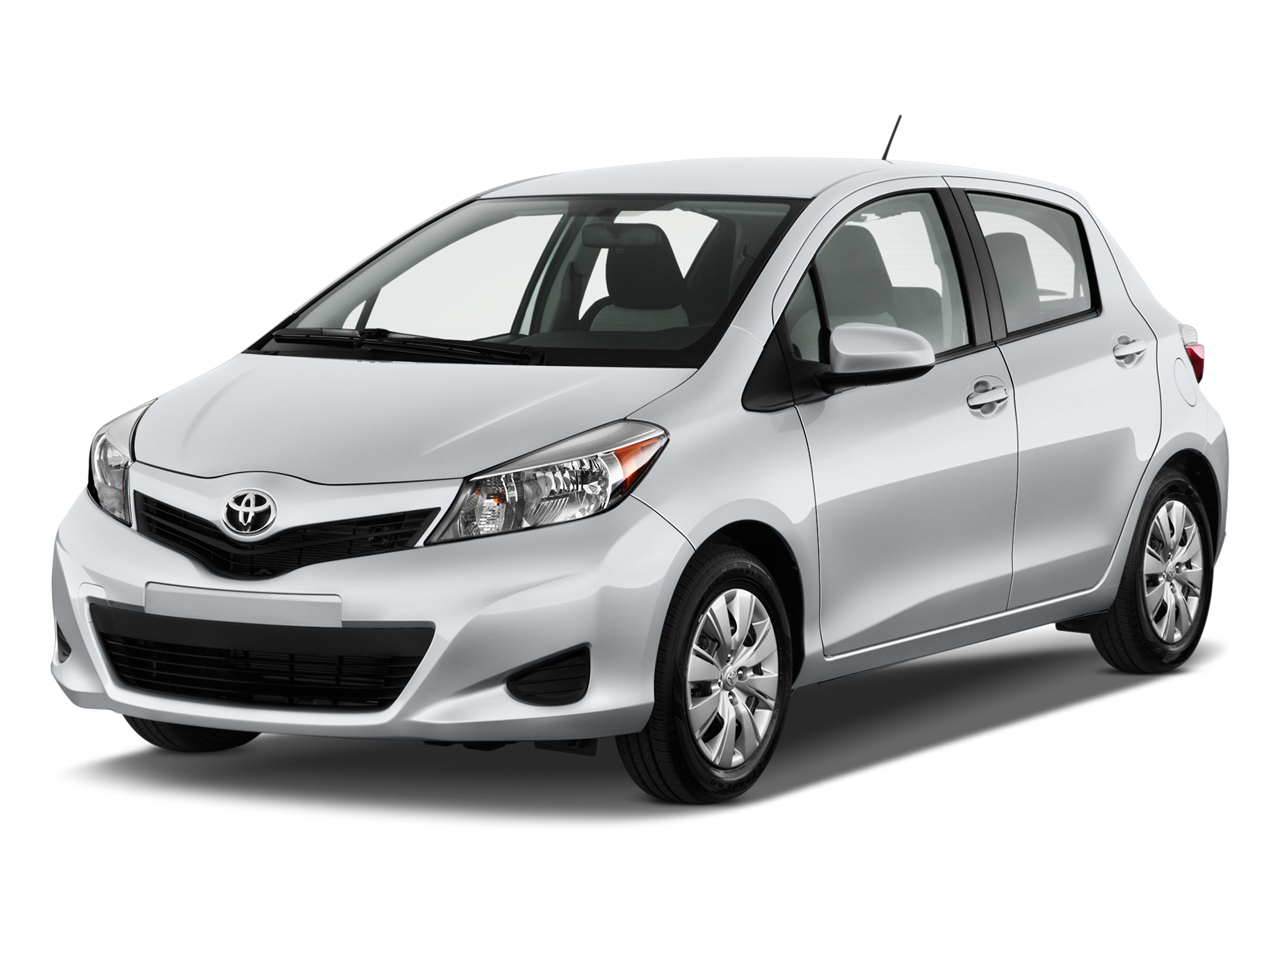 2012 toyota yaris review ratings specs prices and photos the car connection. Black Bedroom Furniture Sets. Home Design Ideas